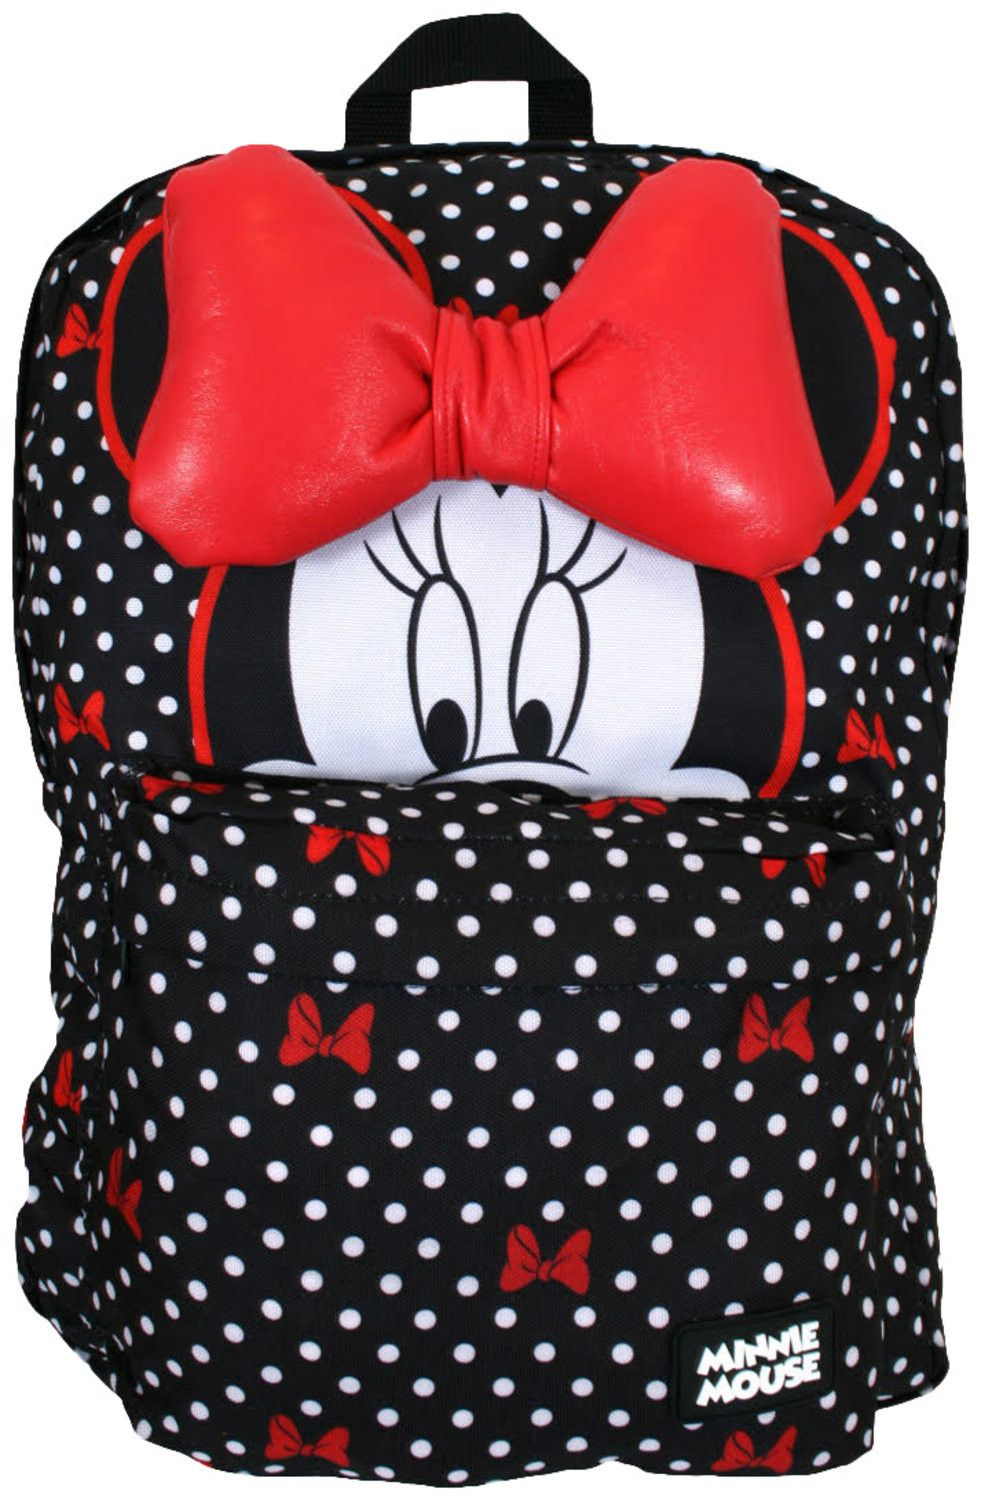 615035f347 Minnie Mouse Bow Backpack  Disney Mnnie Mouse Backpack